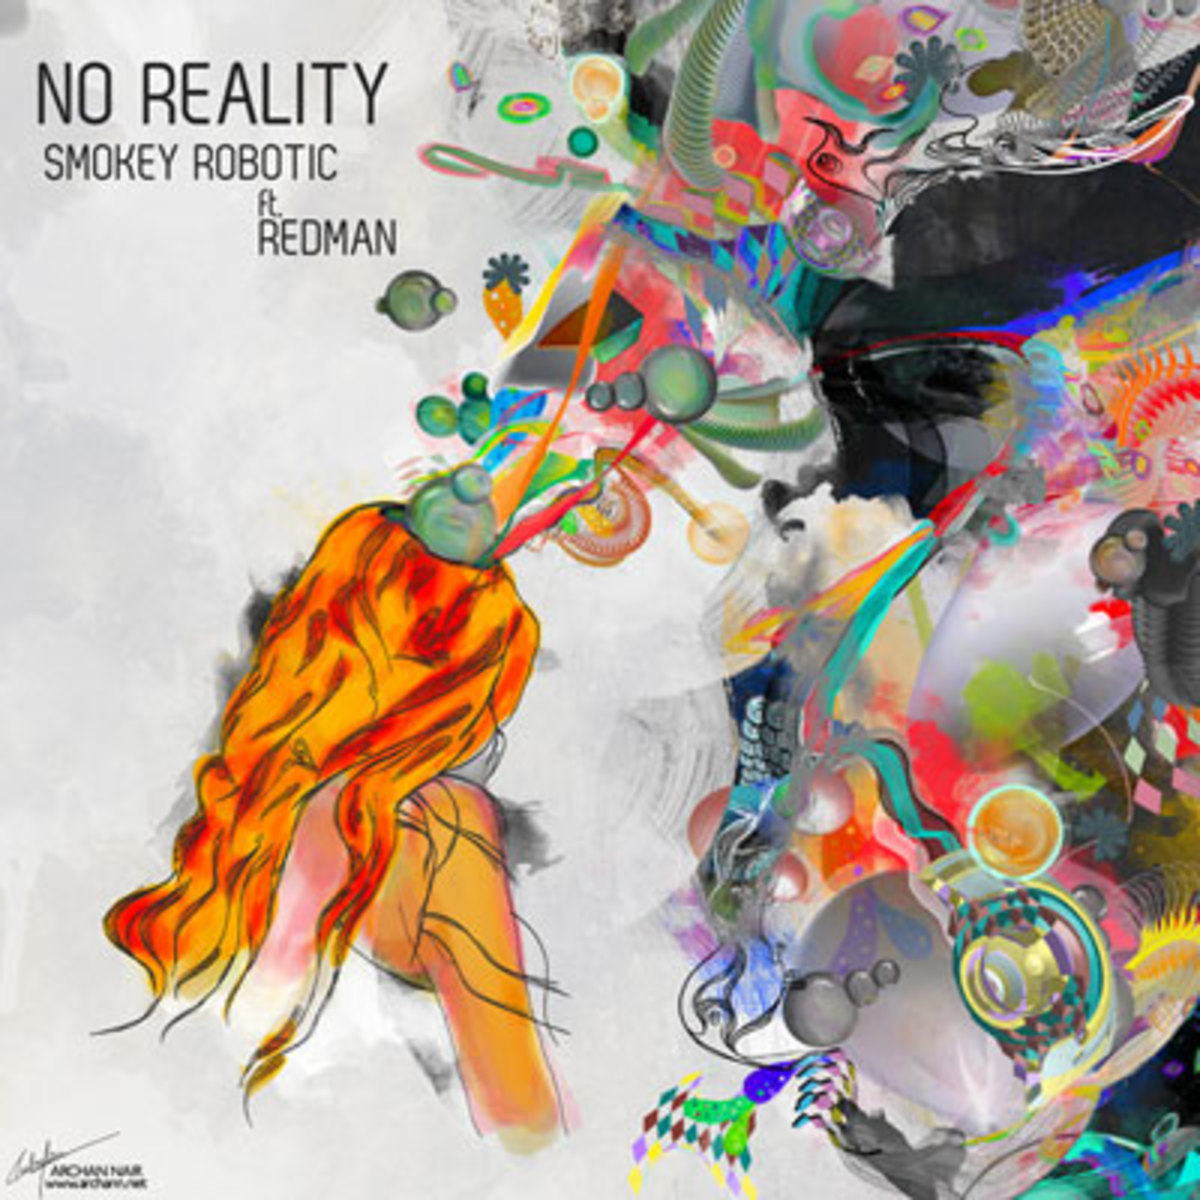 smokeyrobotic-reality.jpg